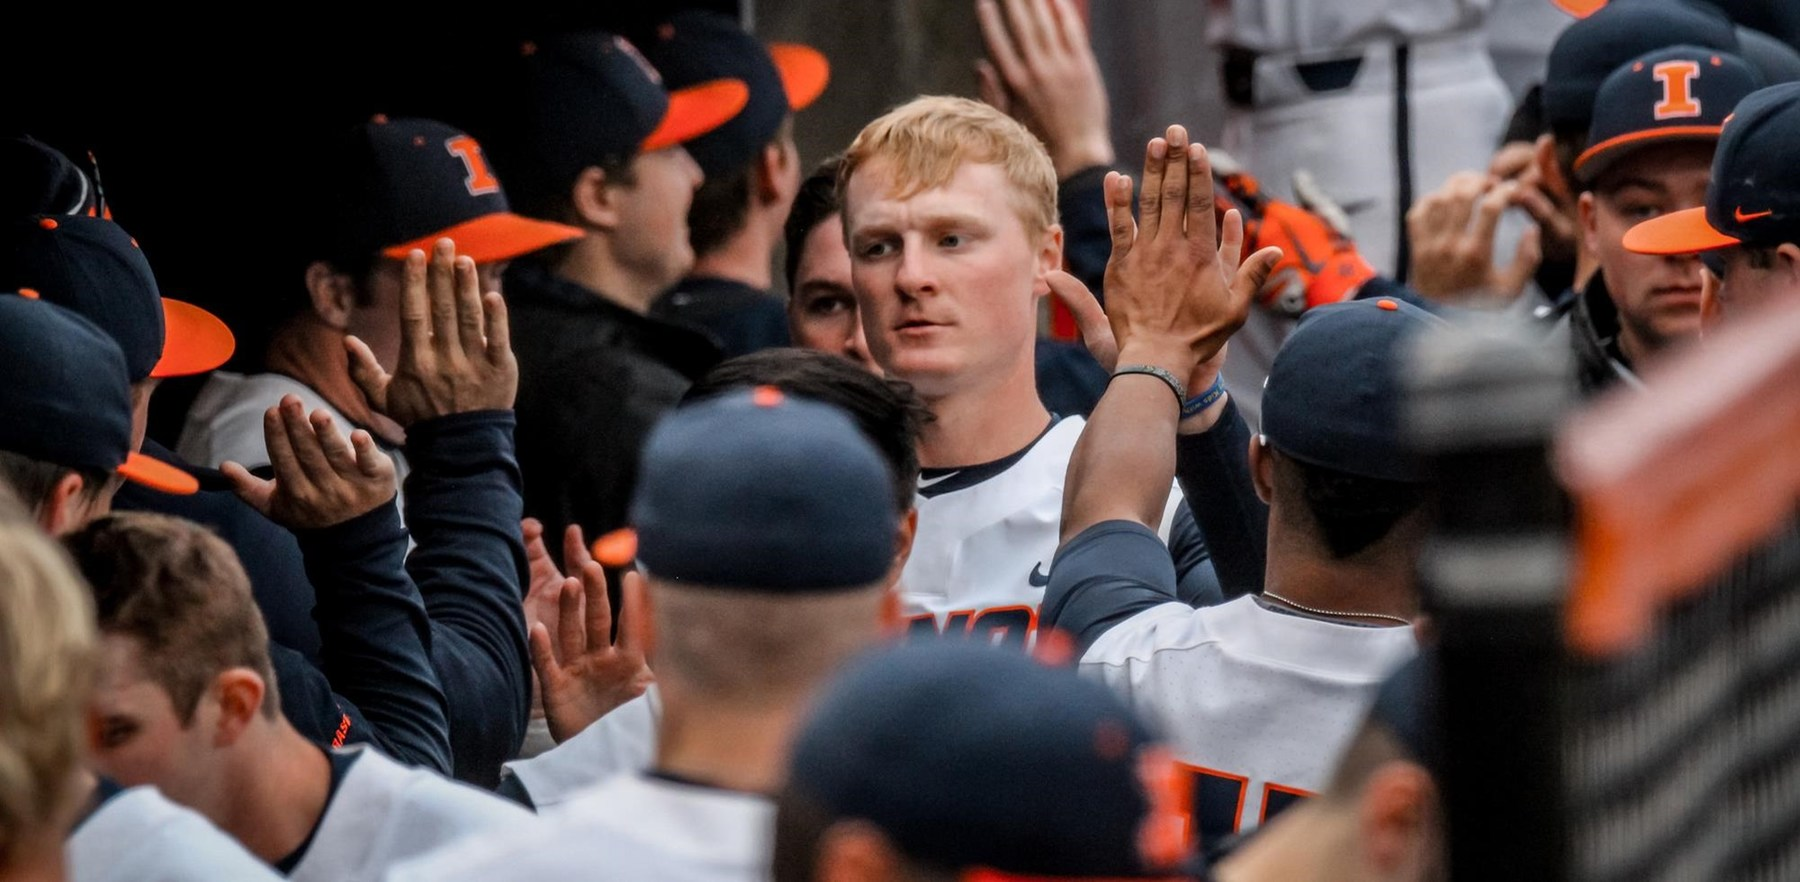 Illini baseball players exchange 'high fives' in the dugout